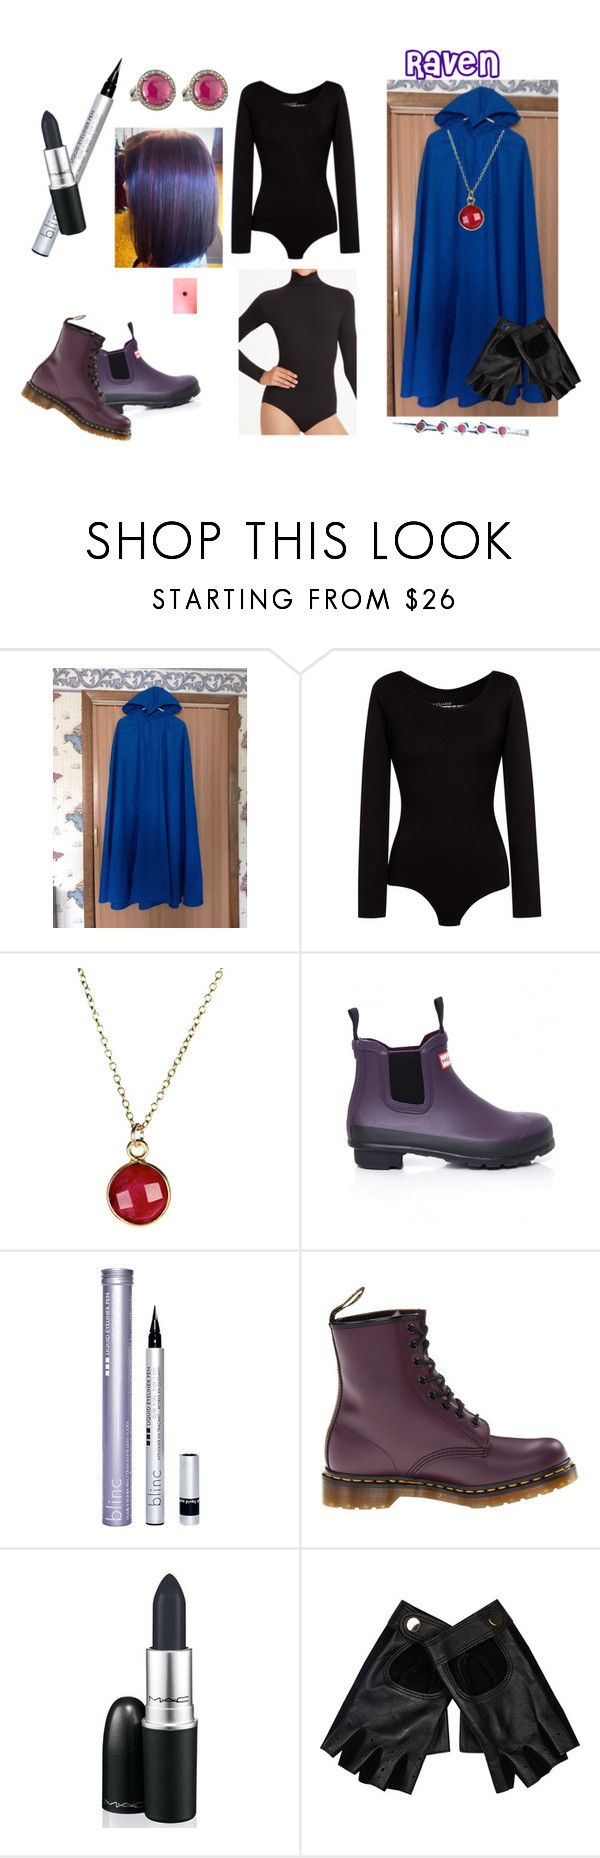 """Raven halloween costume!"" by theartfart ❤ liked on Polyvore featuring Comptoir Des Cotonniers, Hunter, Blinc, Dr. Martens, M.A.C, River Island and Bavna"